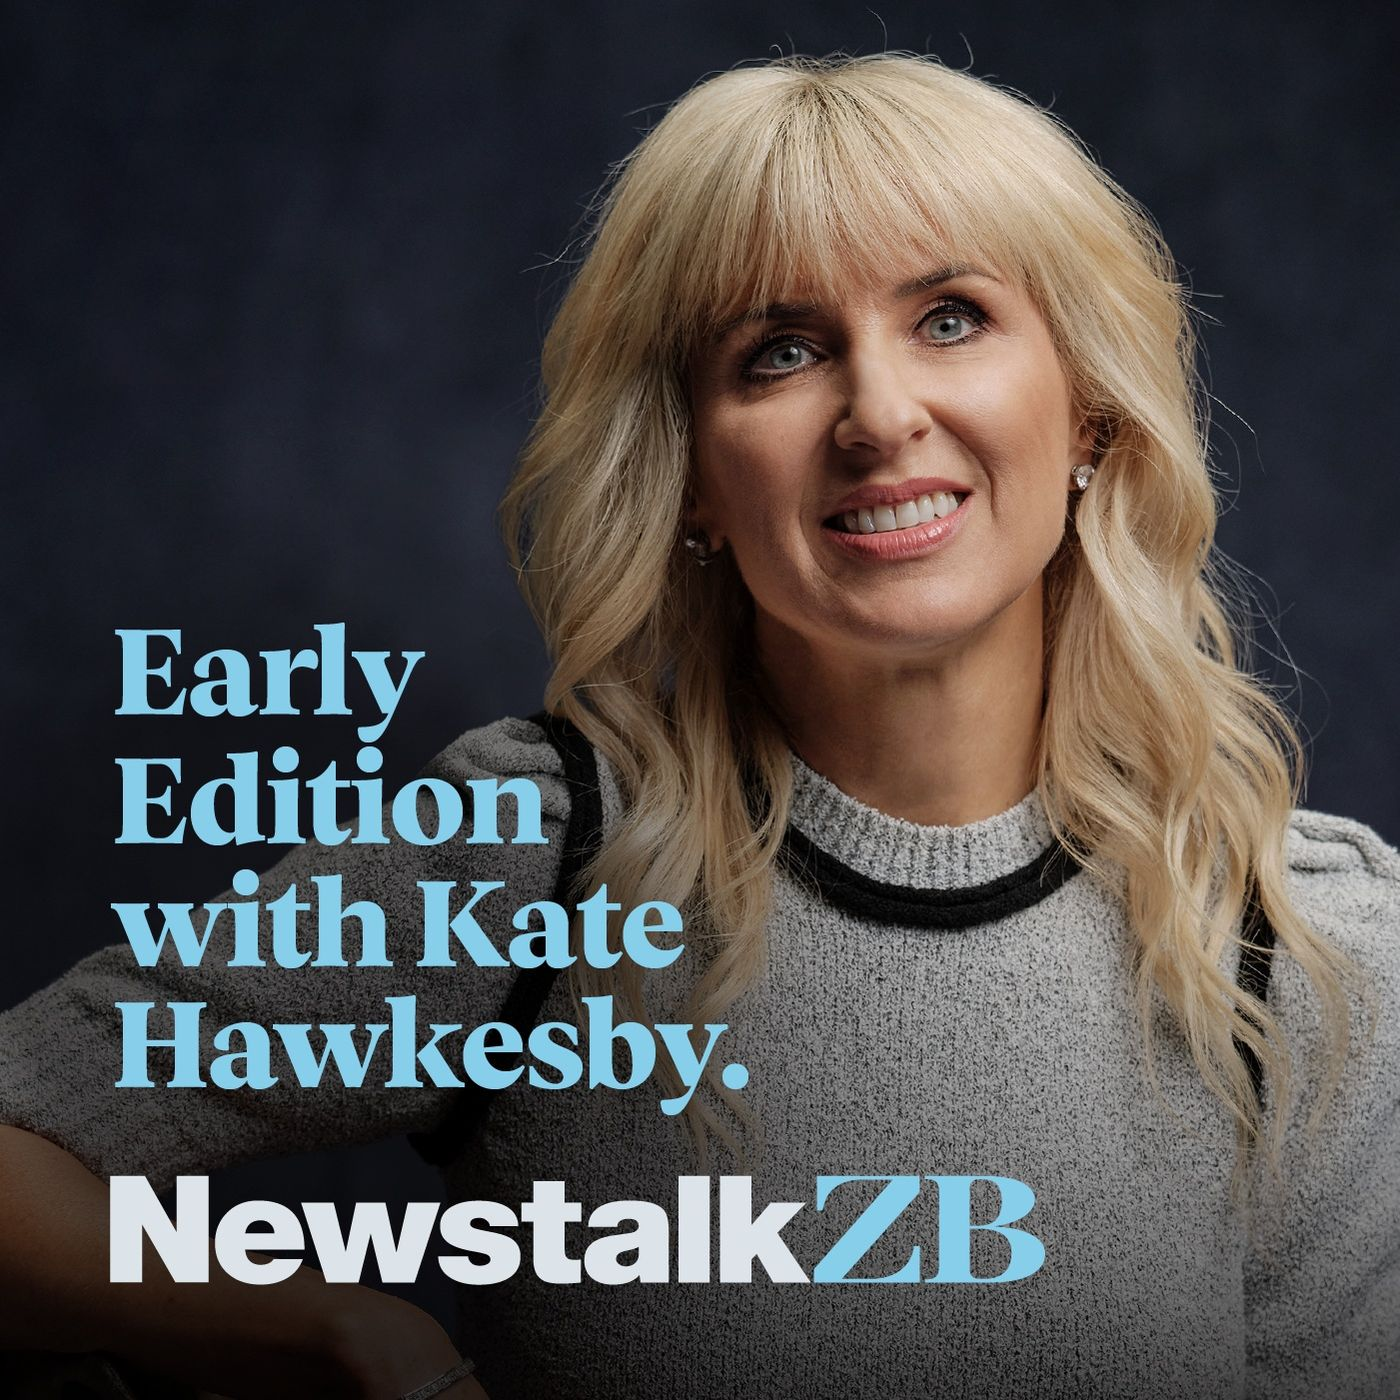 Kate Hawkesby: I can see why some Auckland schools are saying 'no thanks' to going back to class